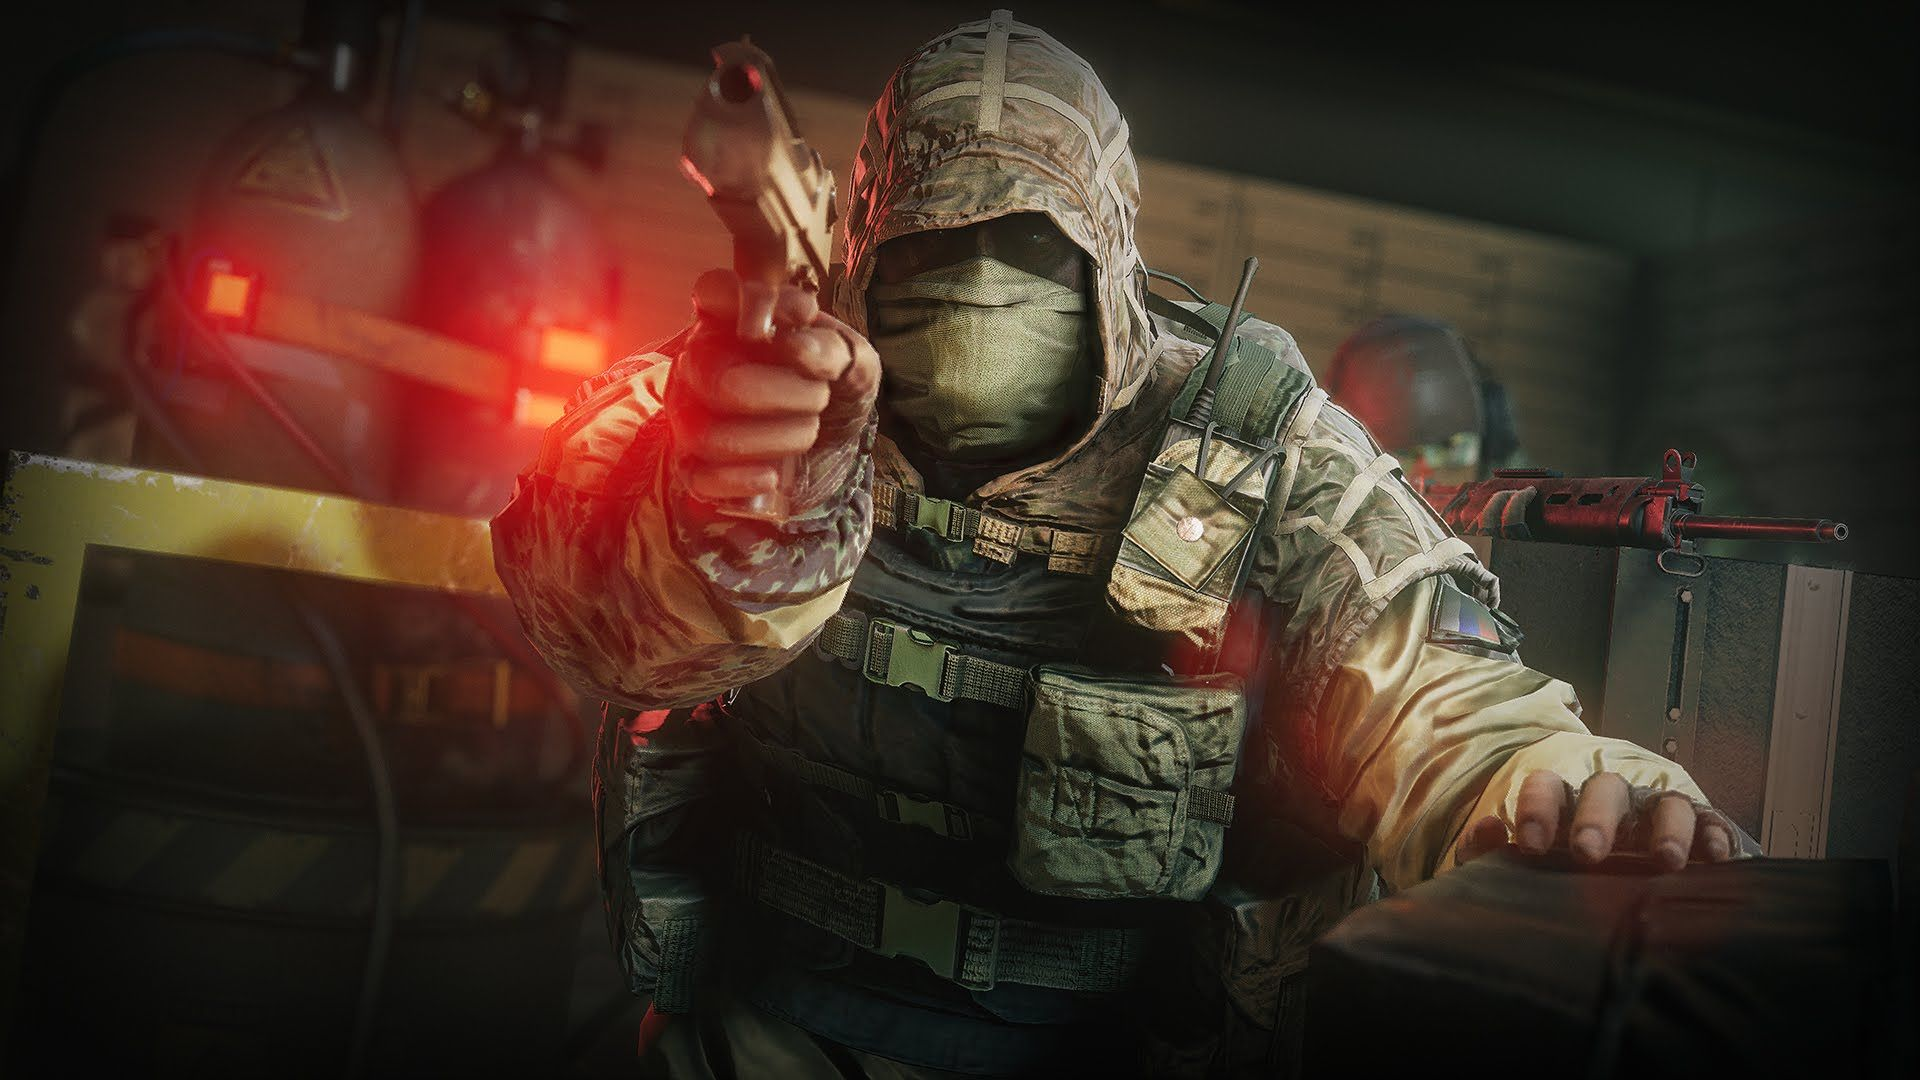 Rainbow Six Siege Wallpapers Cnsoup Collections Photos Art Muette